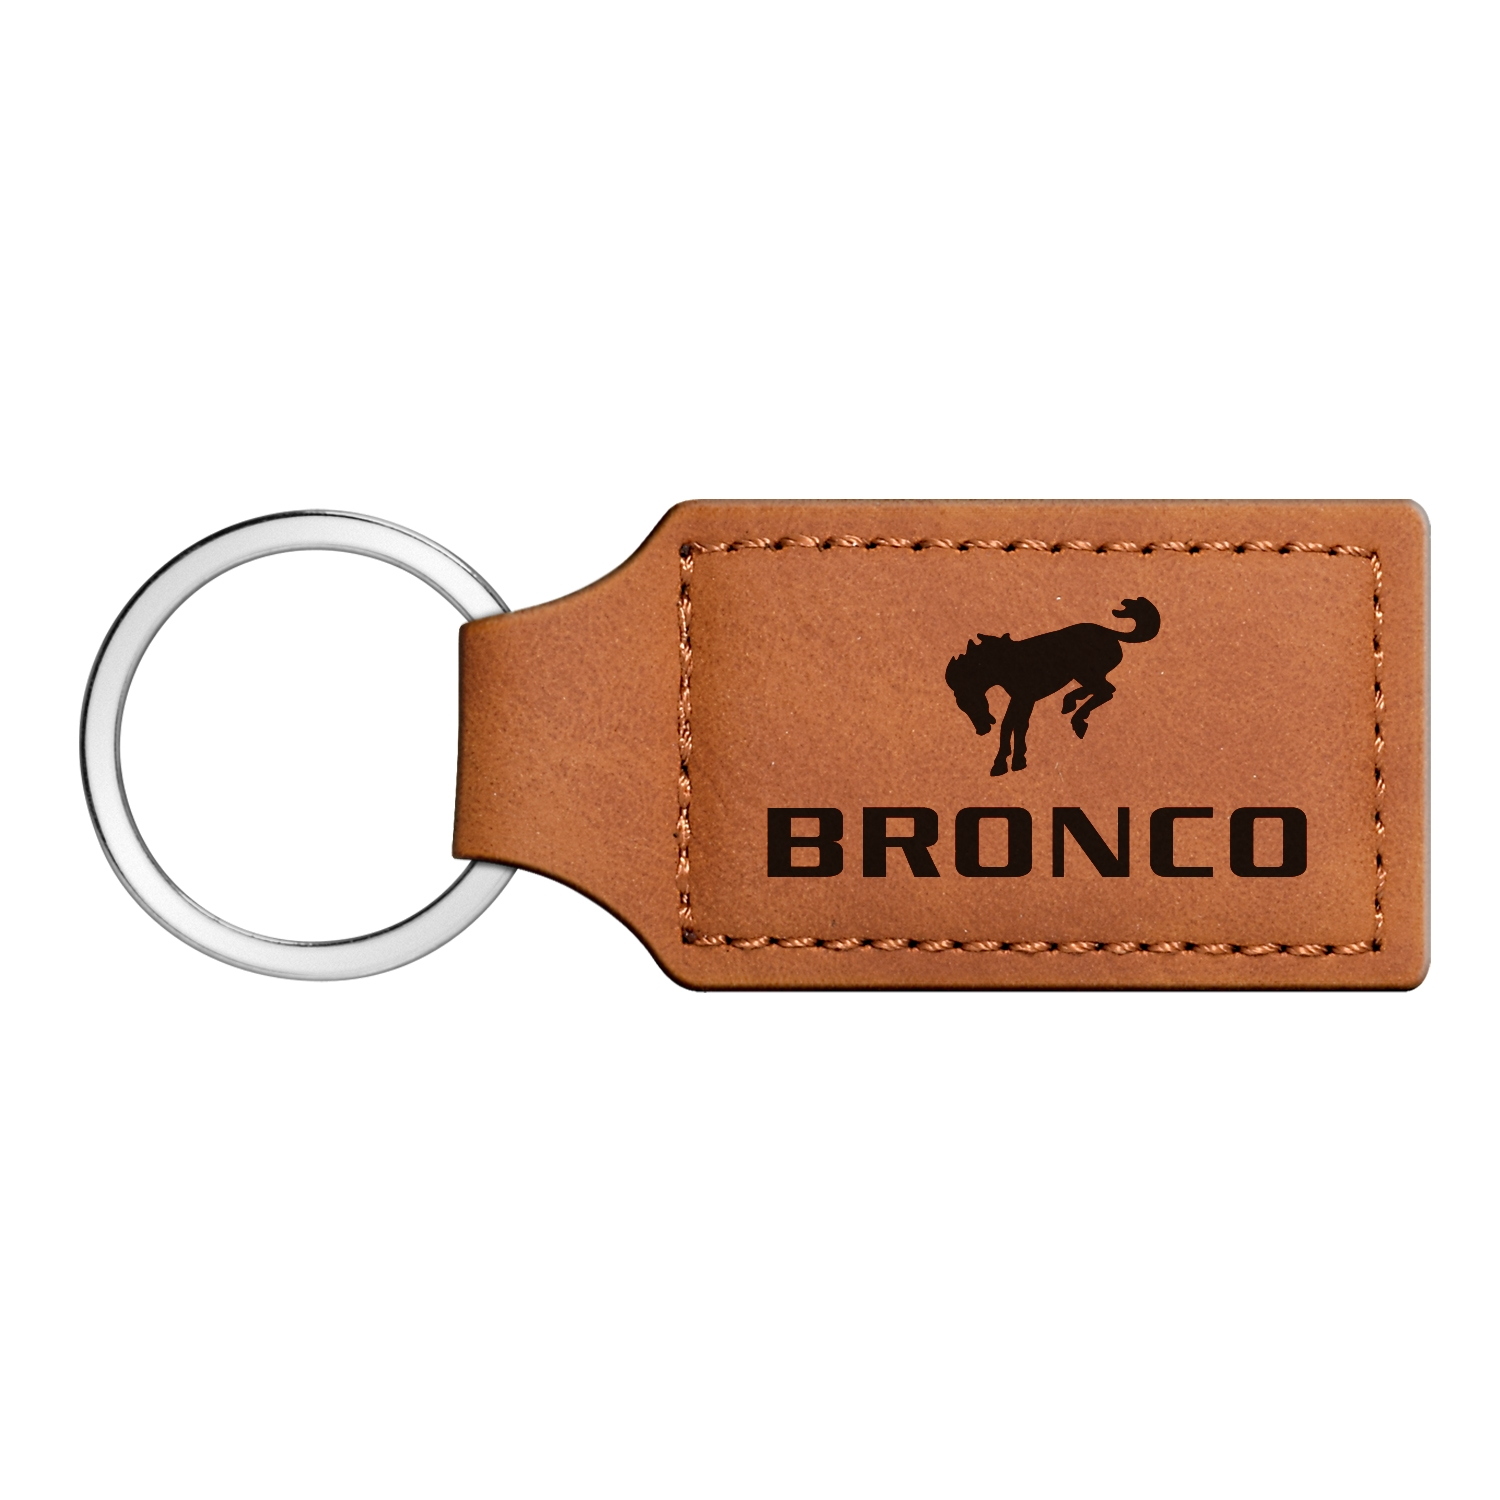 Ford Bronco Rectangular Brown Leather Key Chain